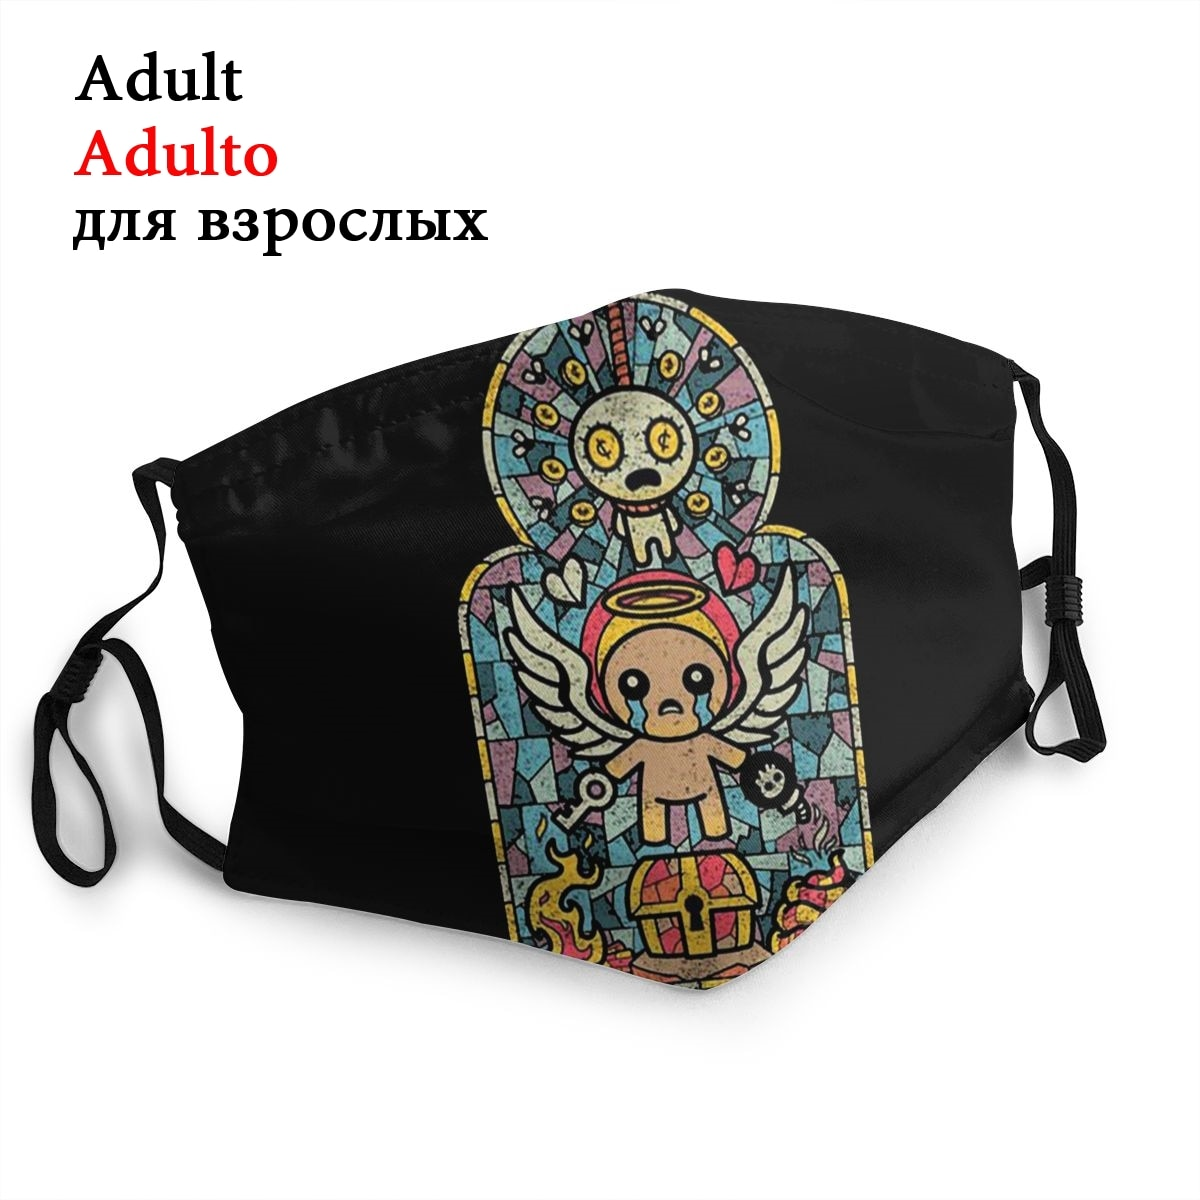 The Binding Of Isaac Unisex Non-Disposable Face Mask Anti Haze Dust Mask Protection Cover Respirator Mouth Muffle